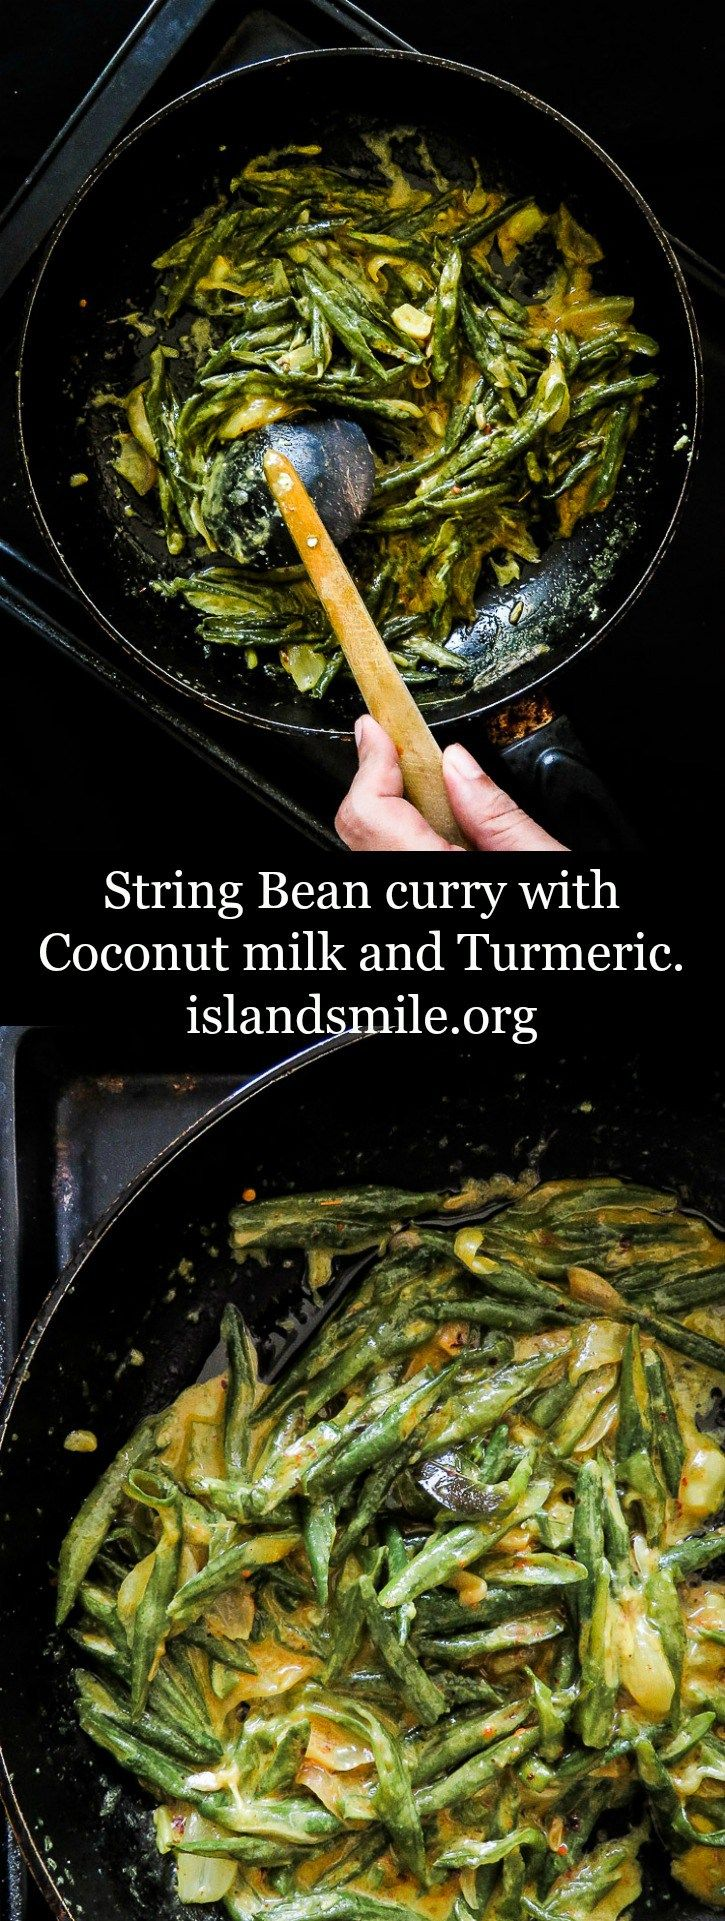 30 minute I sri lankan I vegetarian I vegan I low carb I gluten free I healthy. String bean curry with Turmeric and Coconut milk(Sri Lankan). A not so spicy side dish that includes a few healthy ingredients as well.